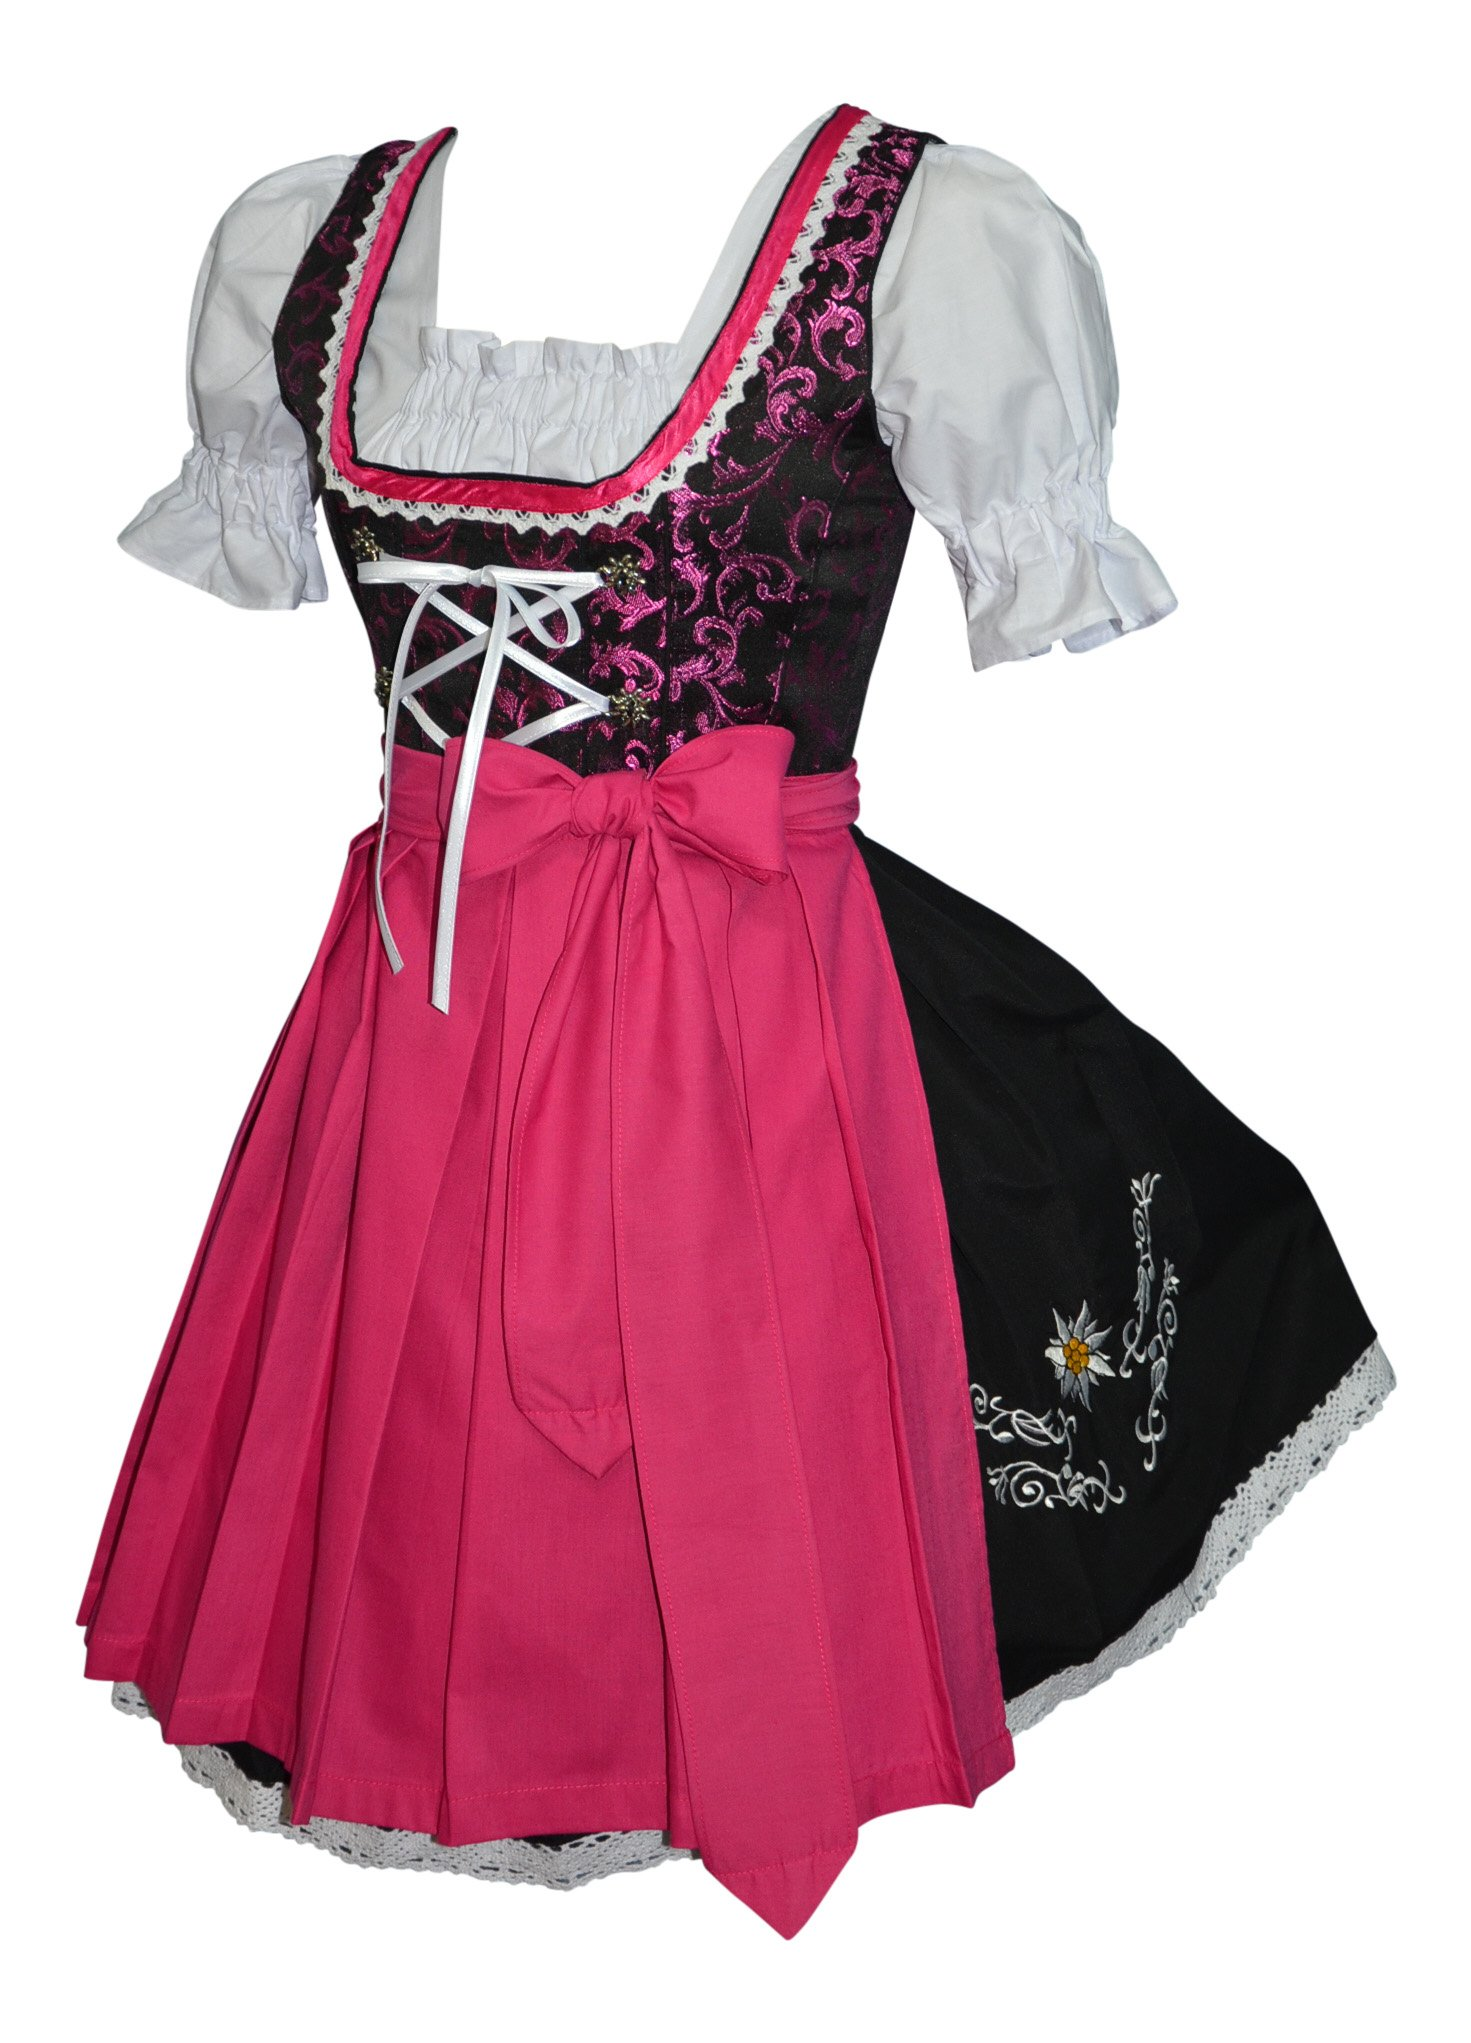 3-piece Short German Oktoberfest Dirndl Dress Black & Pink (14)